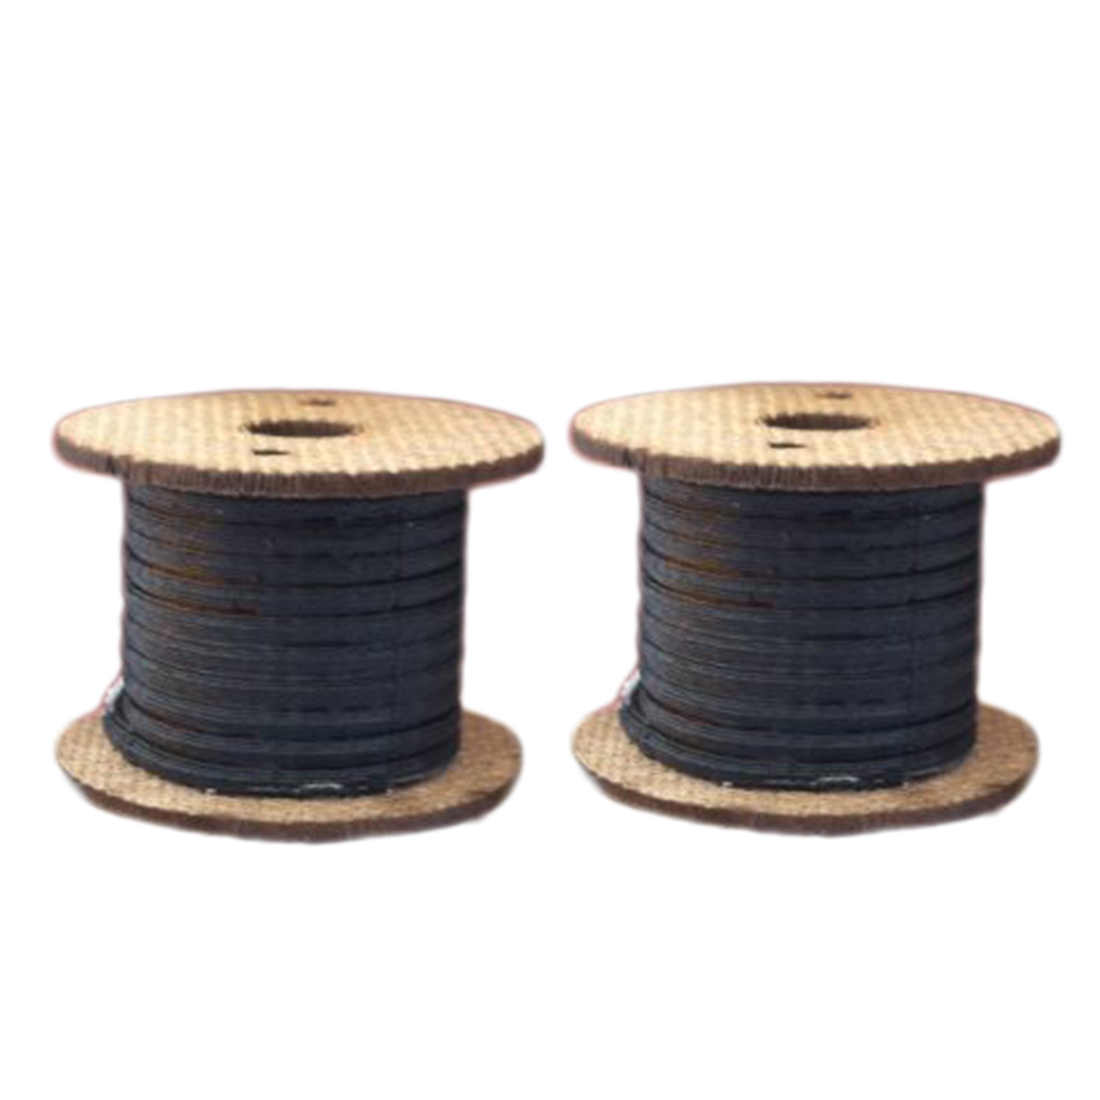 2Pcs 1:87 HO Scale Train Model Cable Sand Table Railway Cable